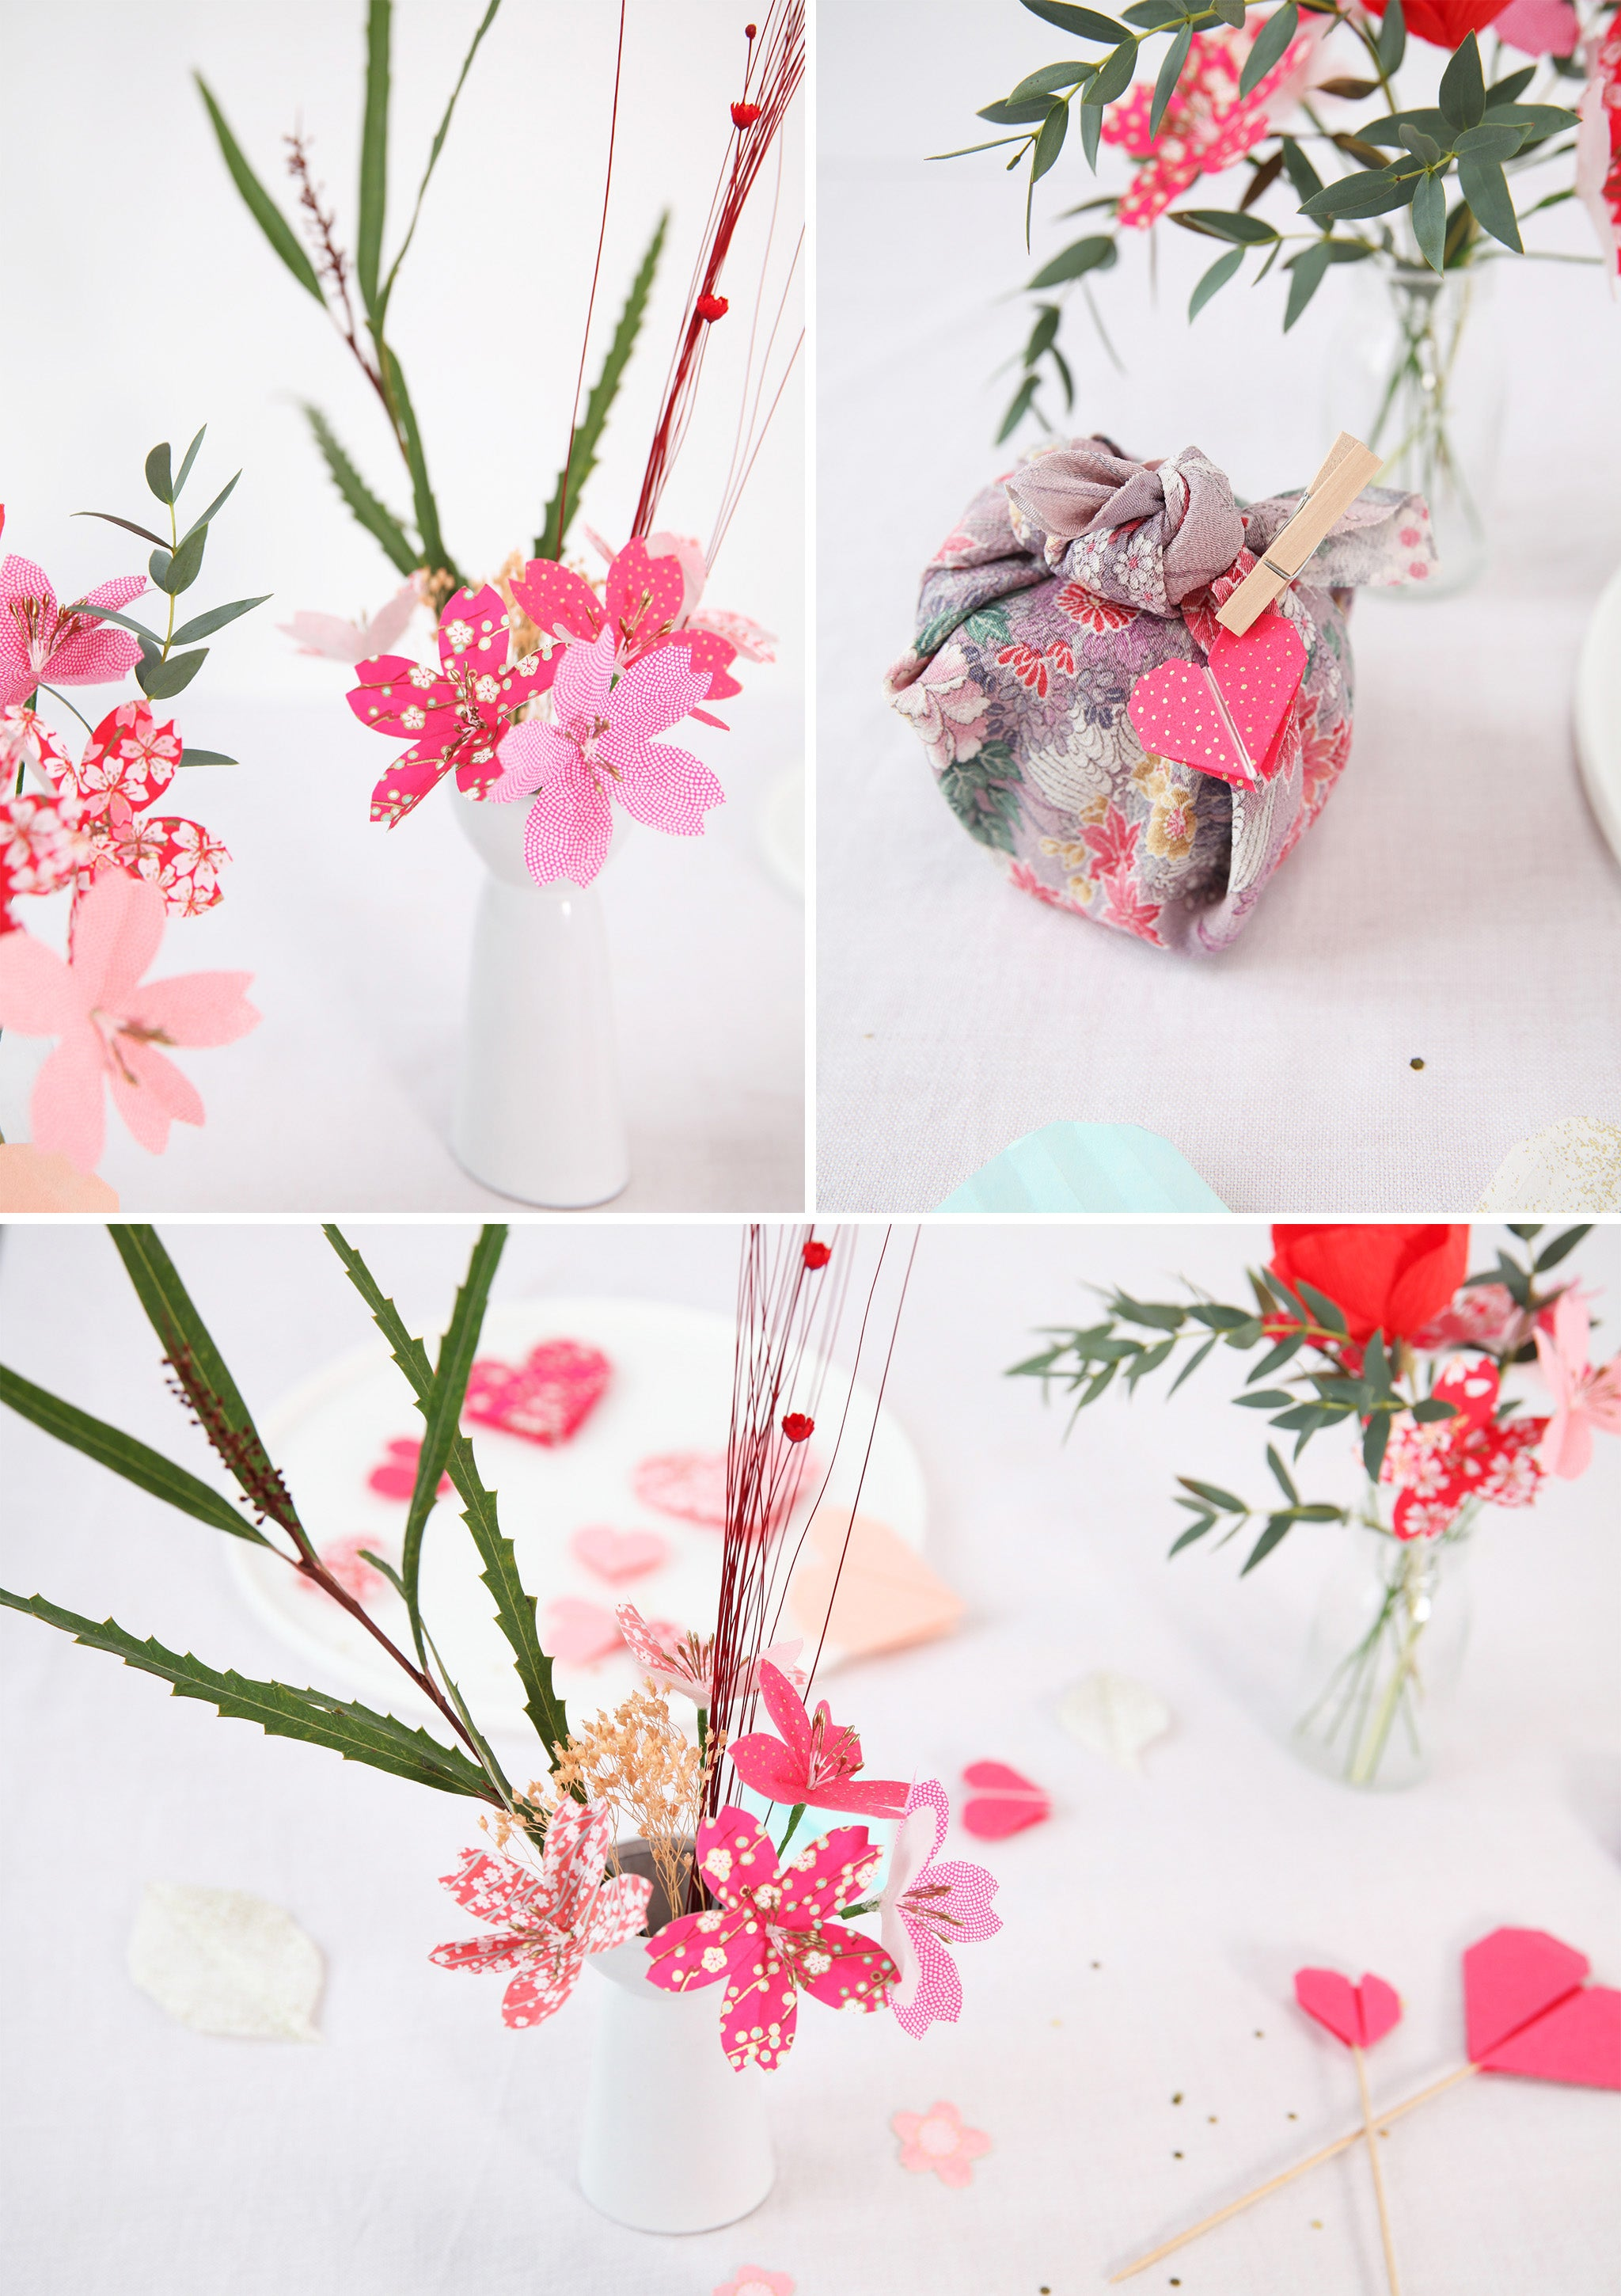 article-blog-5-diy-saint-valentin-ambiance-7